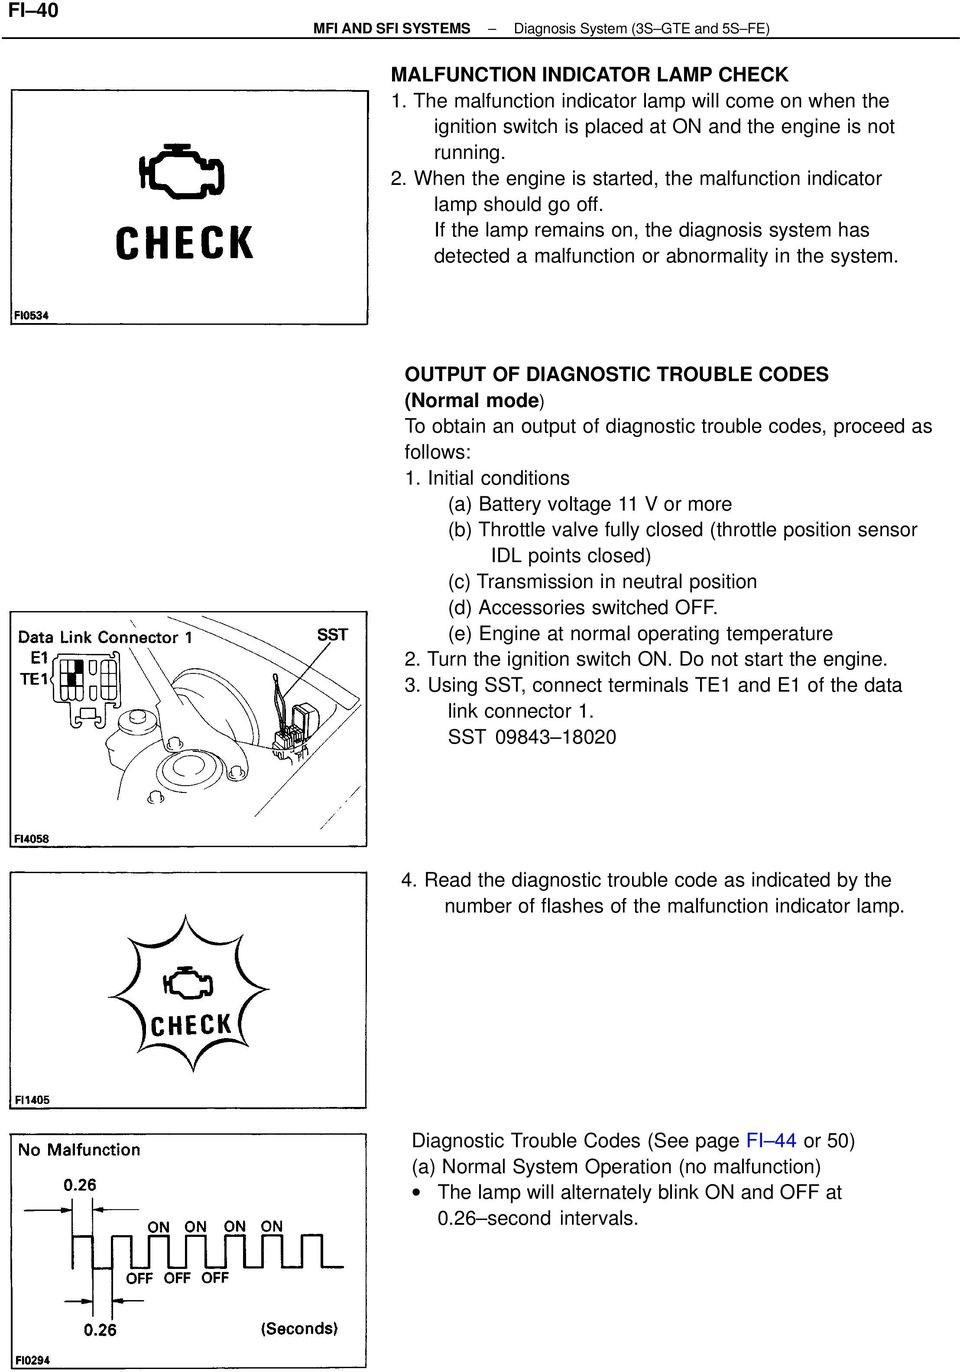 Toyota Sienna Service Manual: Diagnostic trouble code chart